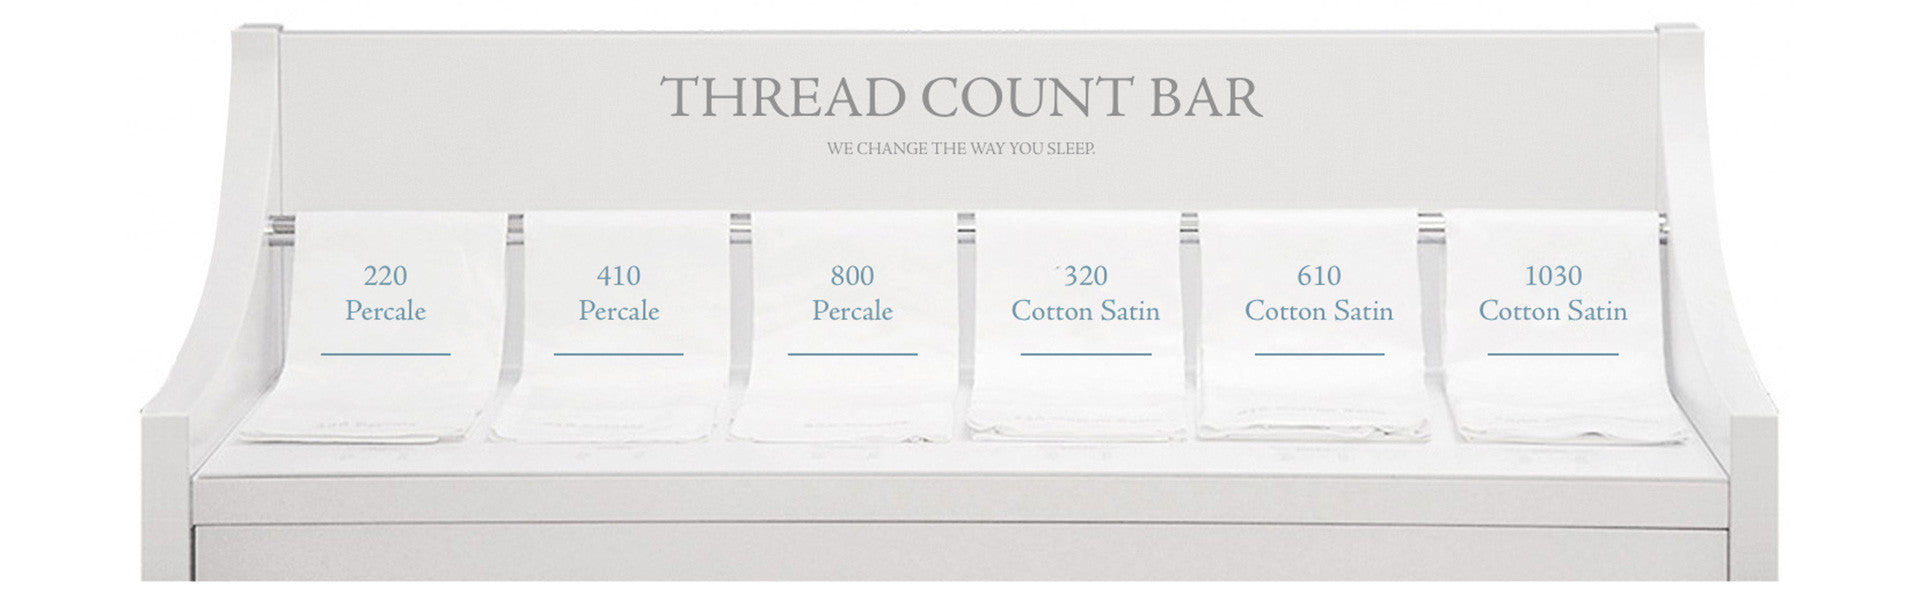 Sheet thread count chart jaic 1980 volume 20 number 1 for What is thread count in sheets